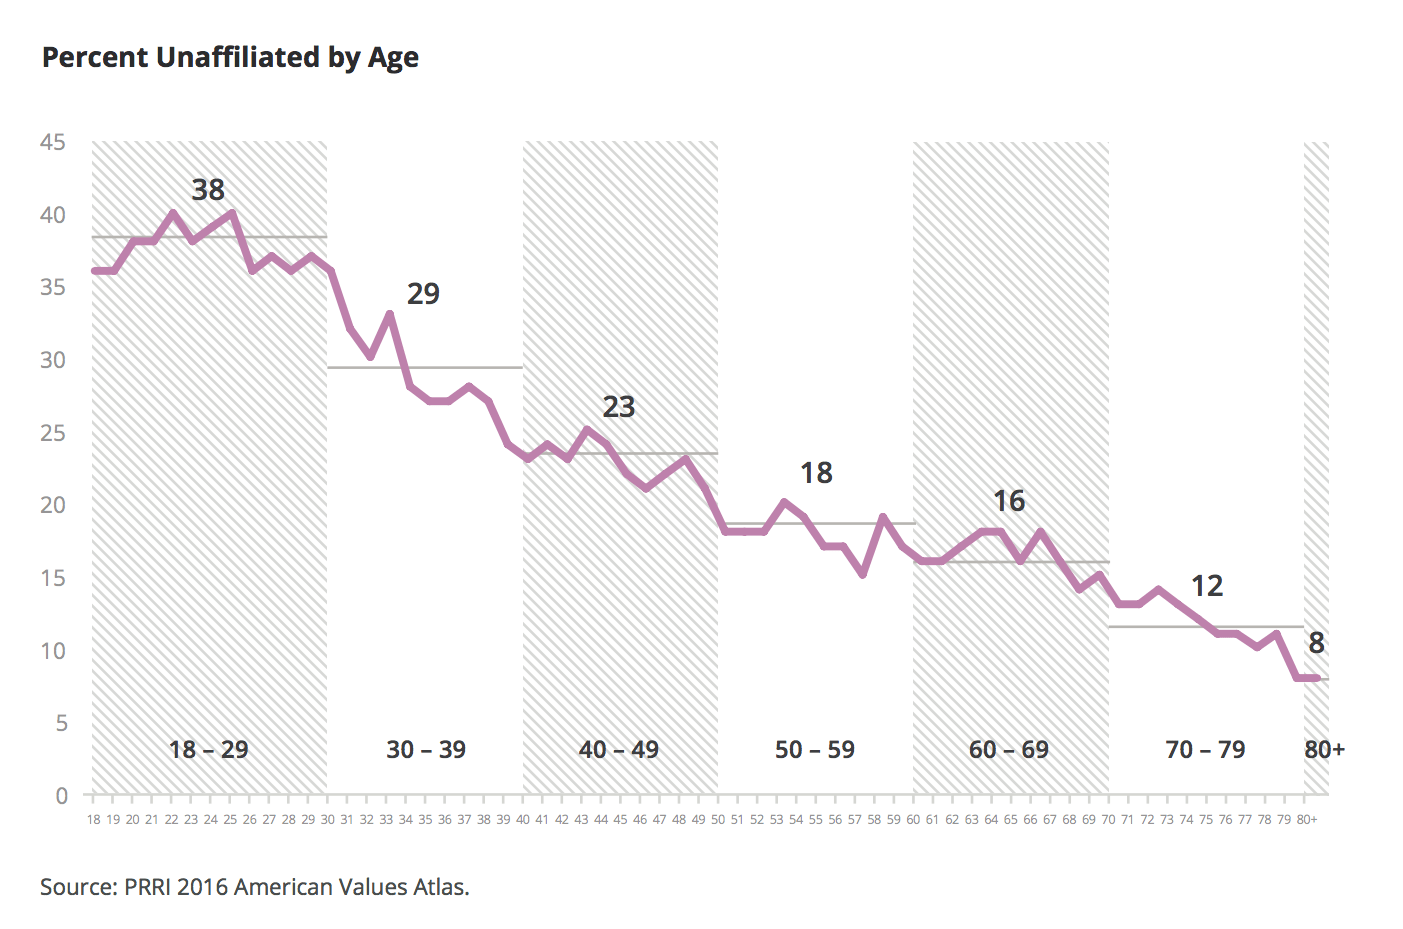 hight resolution of although unaffiliated americans tend to be younger than religiously affiliated americans on average the group collectively is older today than it was a